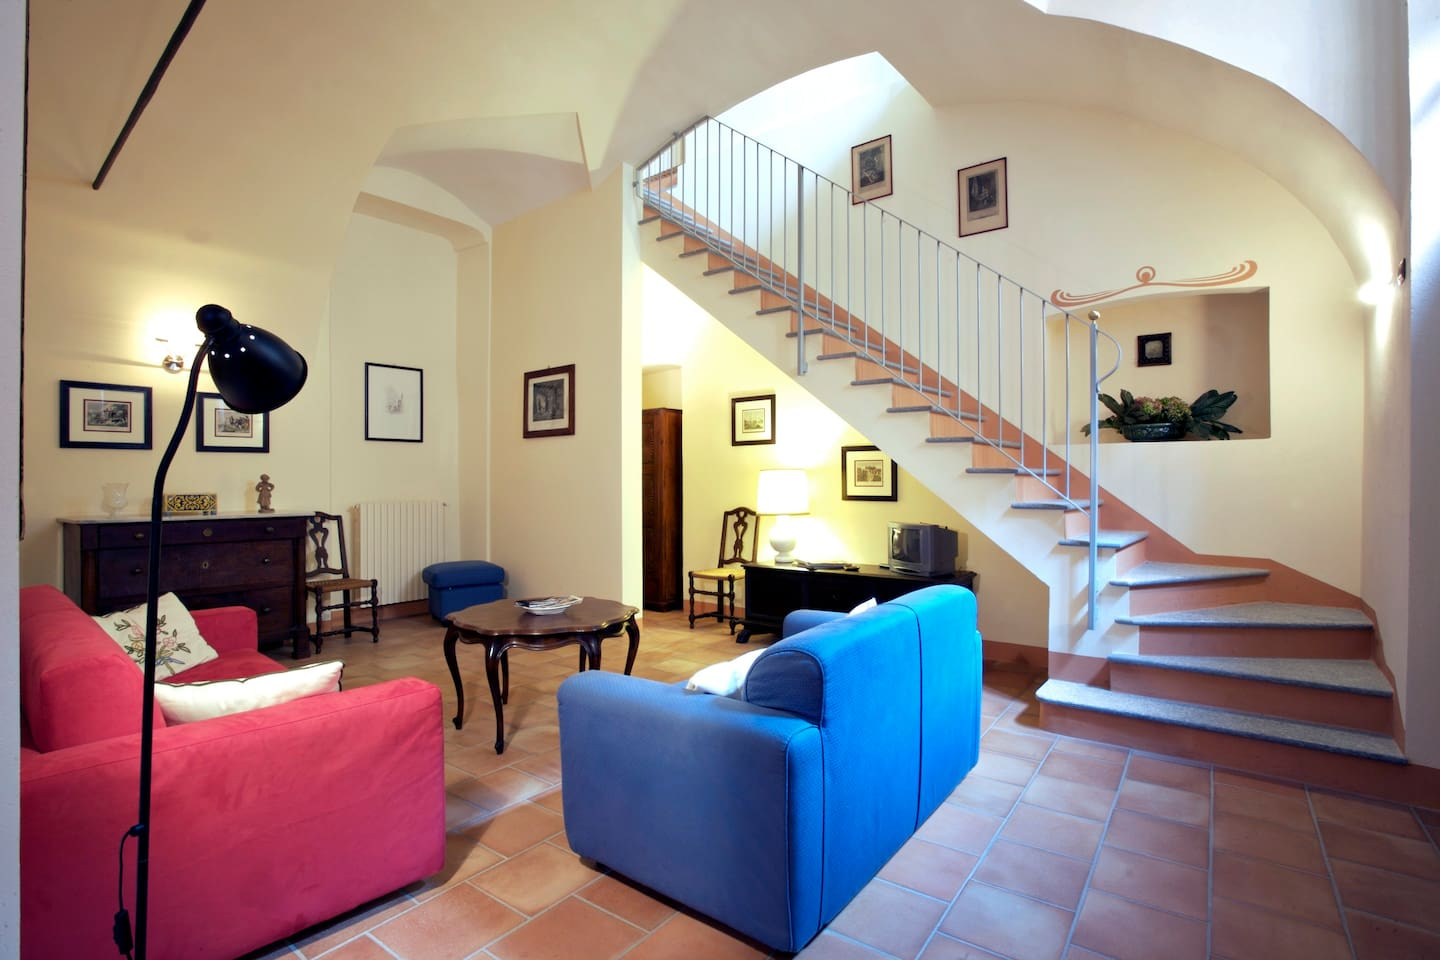 Living room and 1st floor bedrooms stair